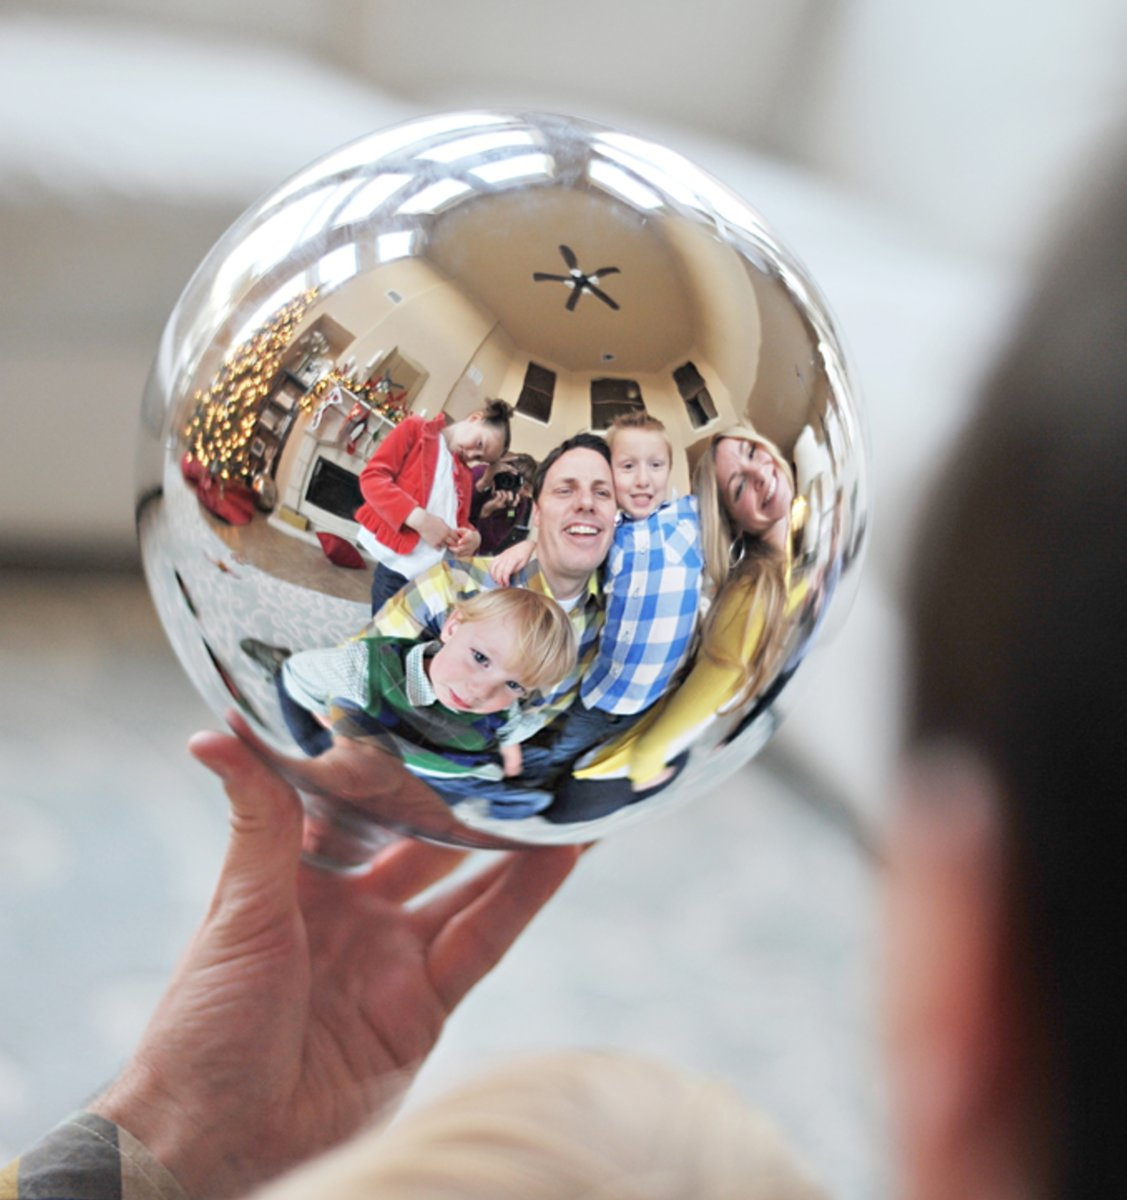 Your entire family captured in a Christmas ornament makes for an interesting Christmas card.